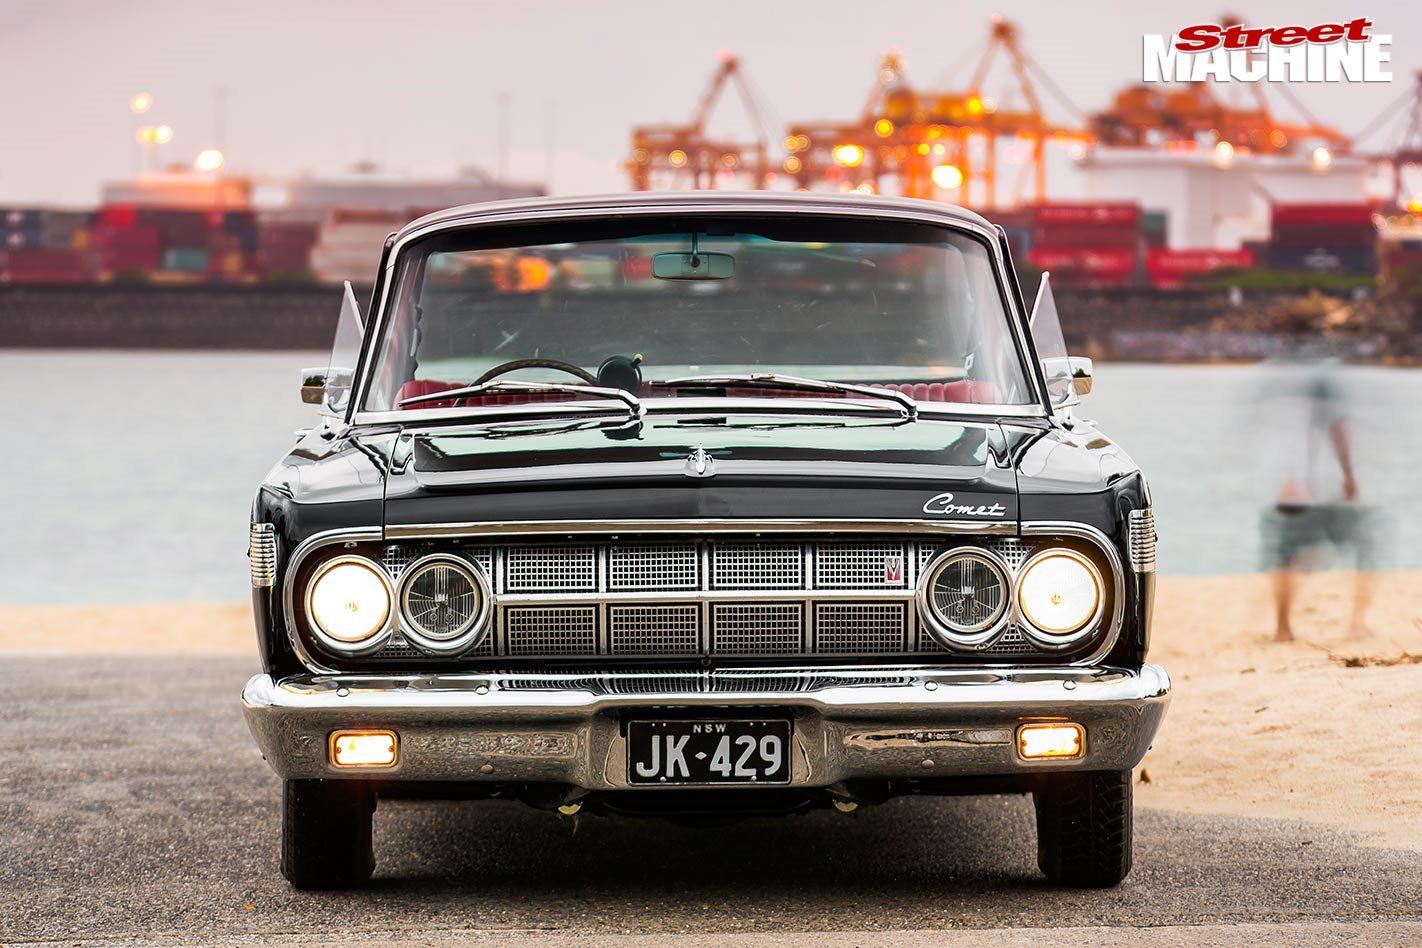 Twin-turbo 1964 Mercury Comet/Ford Ranchero hybrid